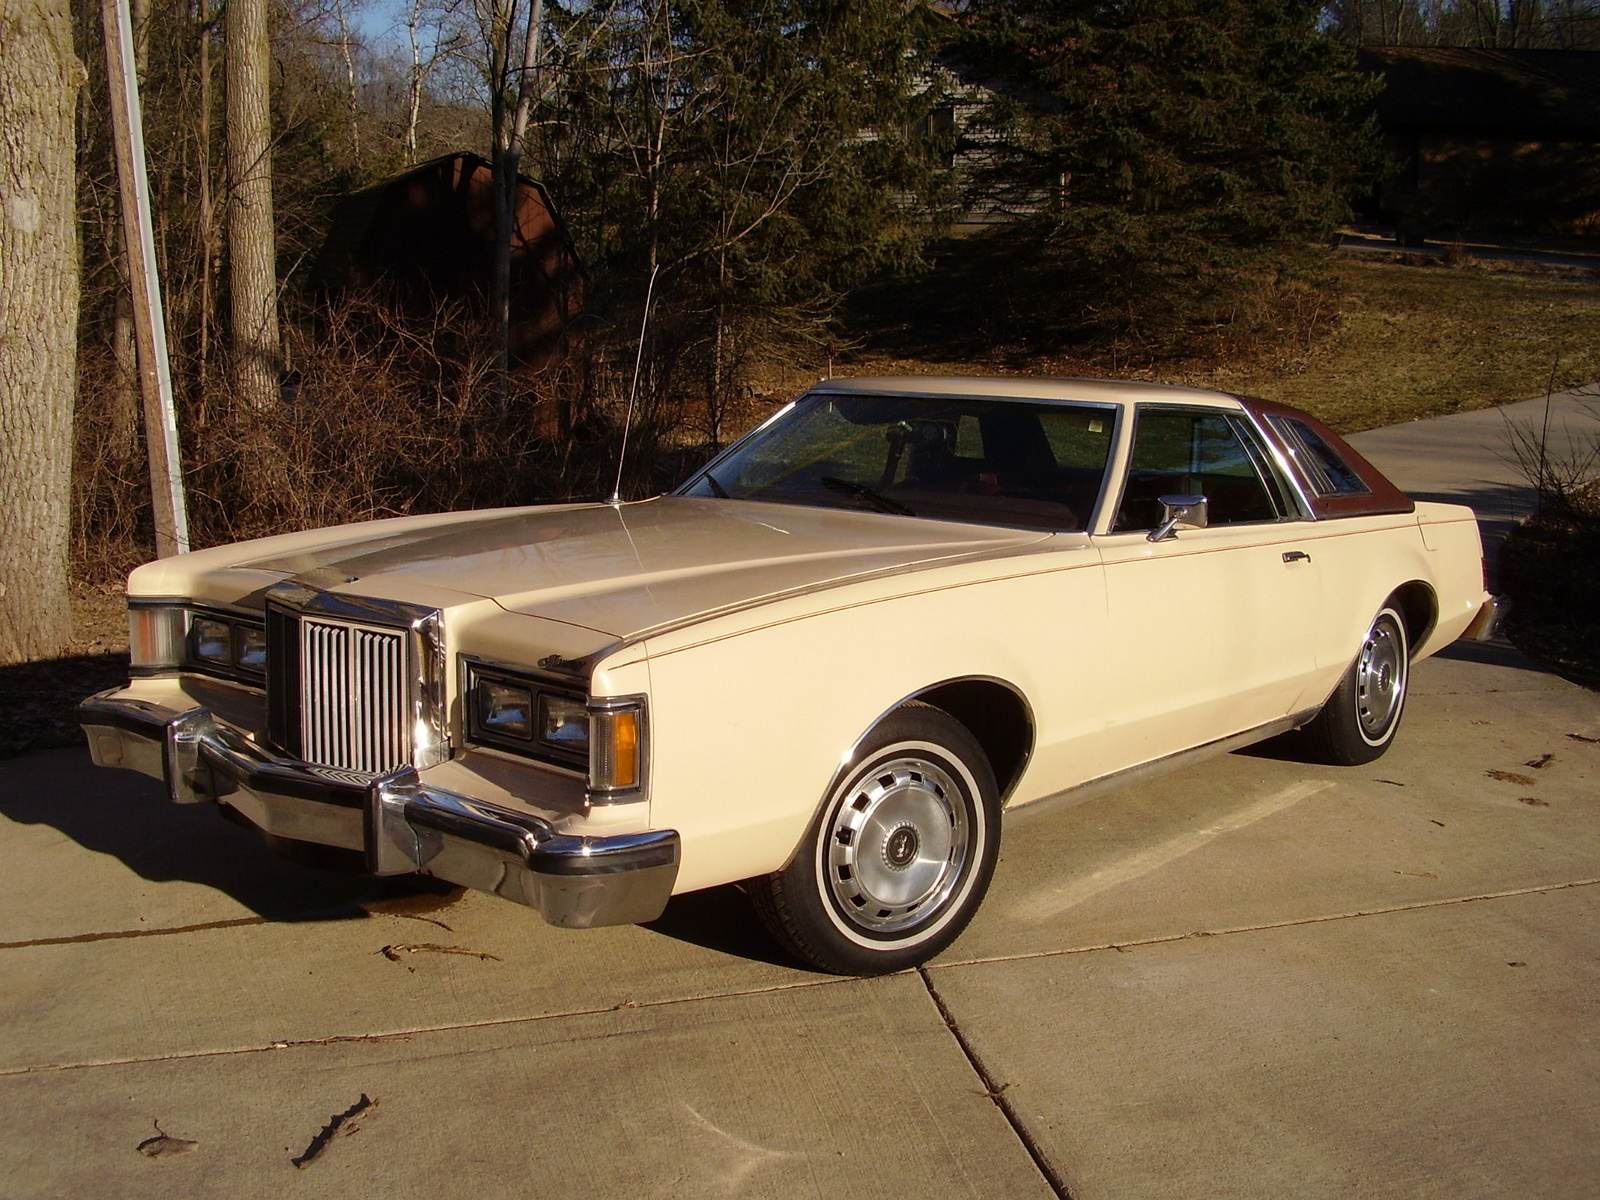 1979 Mercury Cougar Pictures C8686 pi35731706 together with 1991 Ford L8000 Wiring Diagram besides 1990 93 Honda Accord as well 1997 Mercury Grand Marquis Pictures C2794 pi36553358 additionally File '98 '99 Mercury Sable DOHC 24V Sedan. on 1993 mercury sable